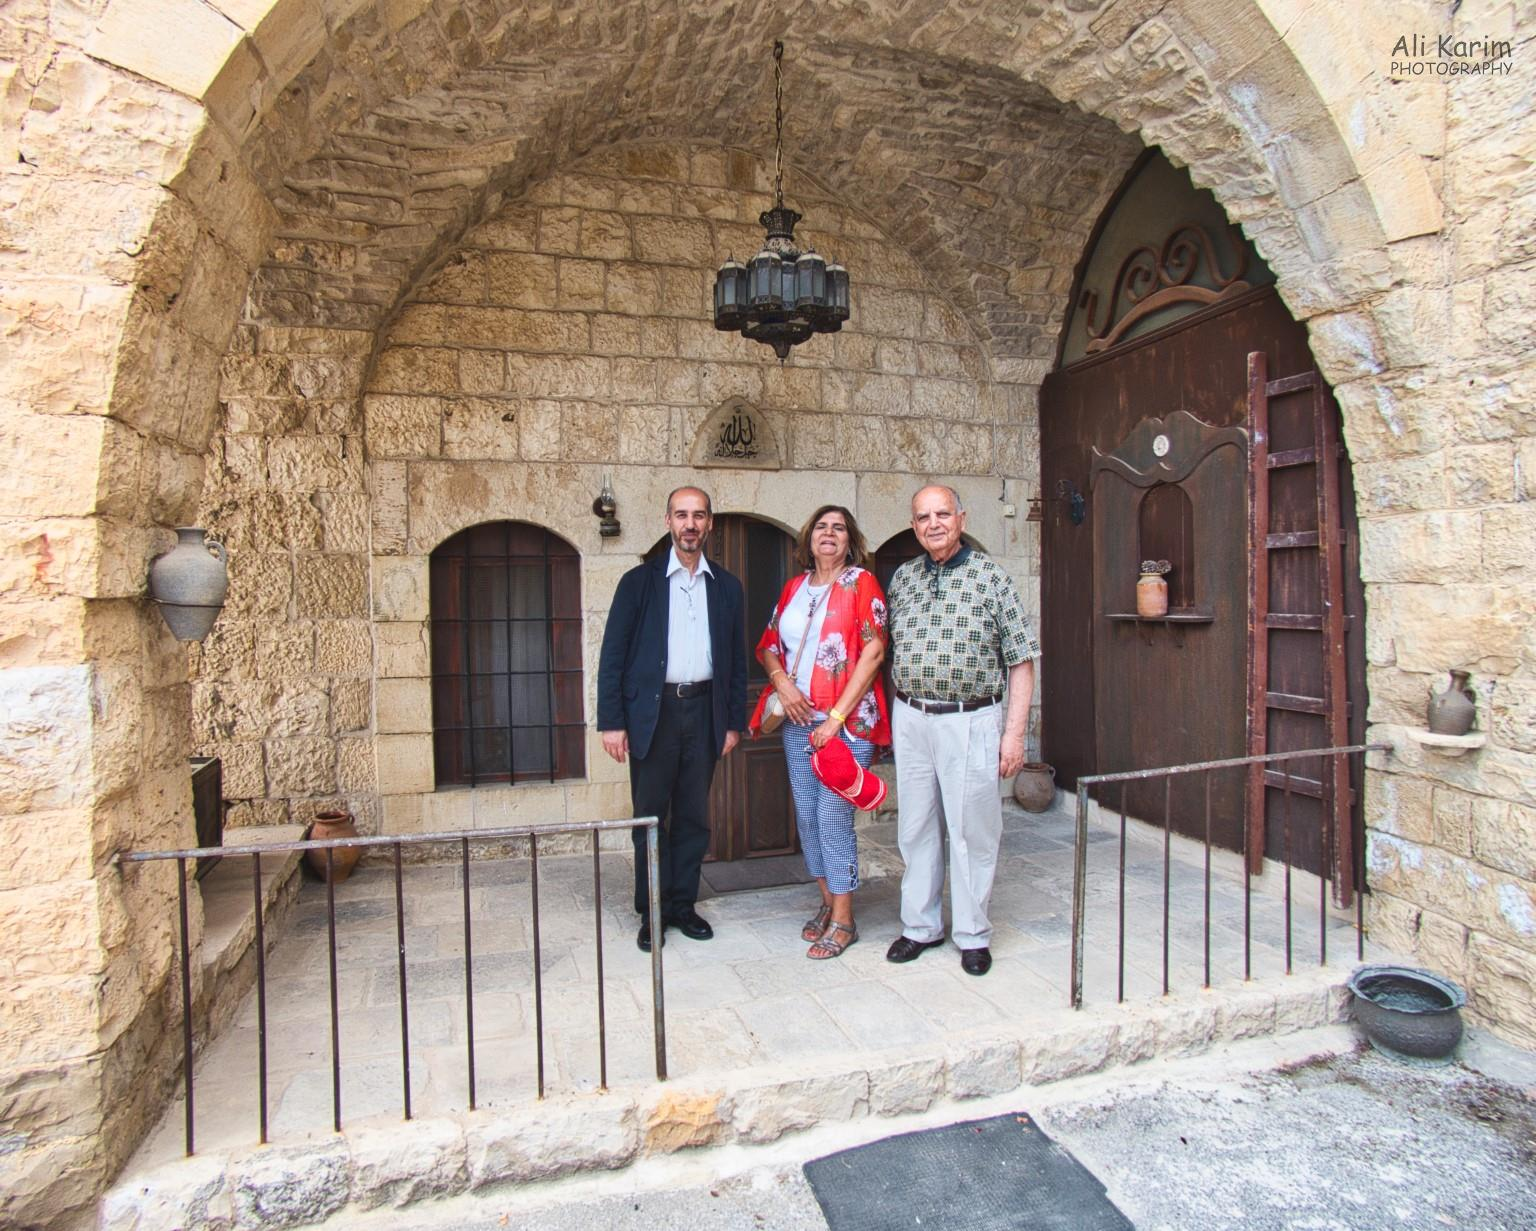 Druze and the Chouf Mountains Outside the Druze mosque, with Mr Hamada on the right and the caretaker on the left